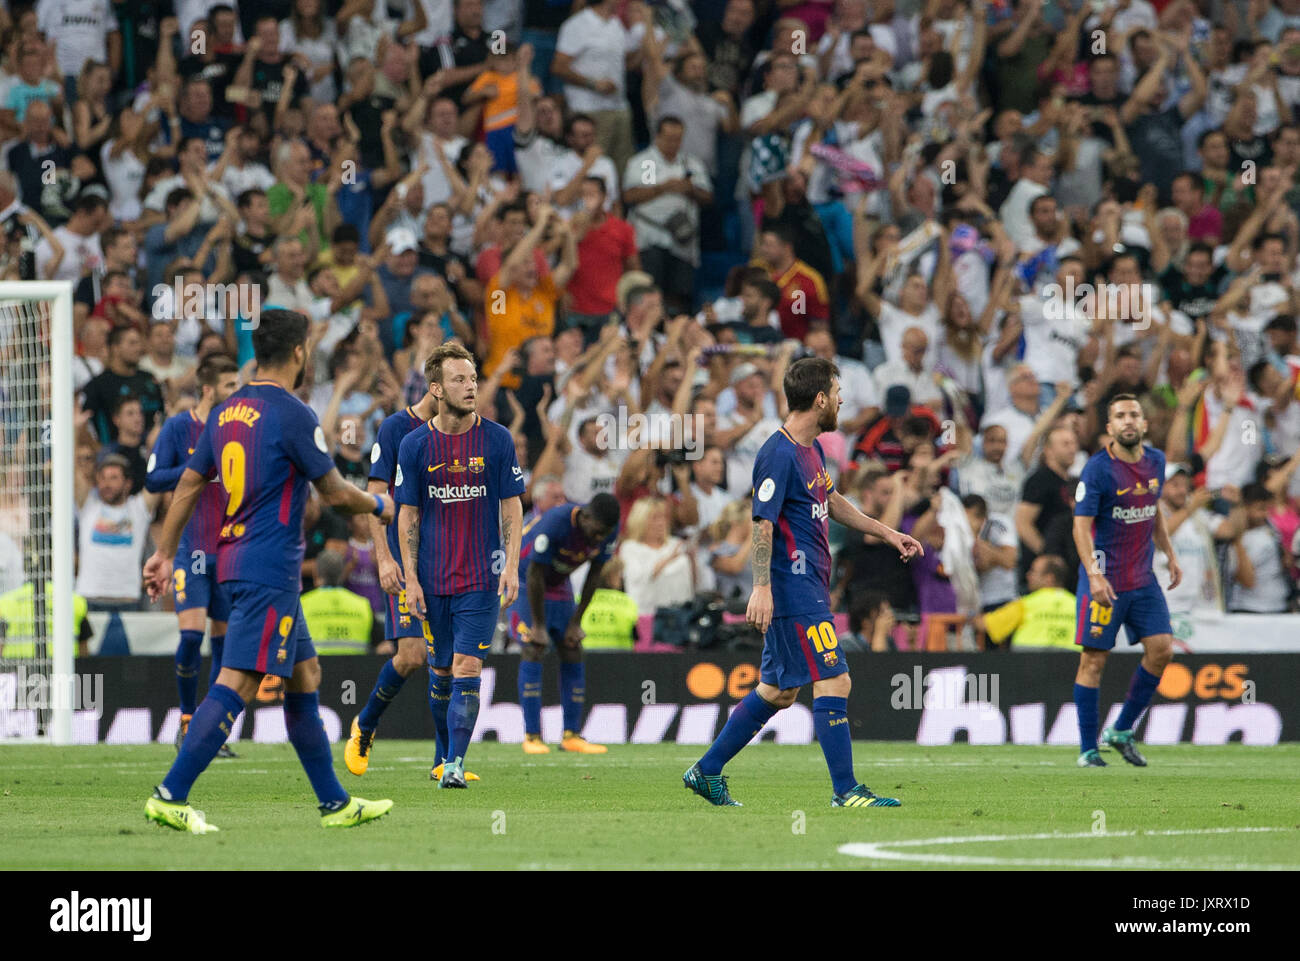 Madrid, Spain. 16th Aug, 2017. Second Leg of the Spanish Supercup played in Santiago Bernabeu Stadium between Real Madrid and FC Barcelona at Aug 16th 2017. Real Madrid won the game 2-0 and was the Spanish Supercup Champion 2017. Credit: AFP7/Alamy Live News - Stock Image